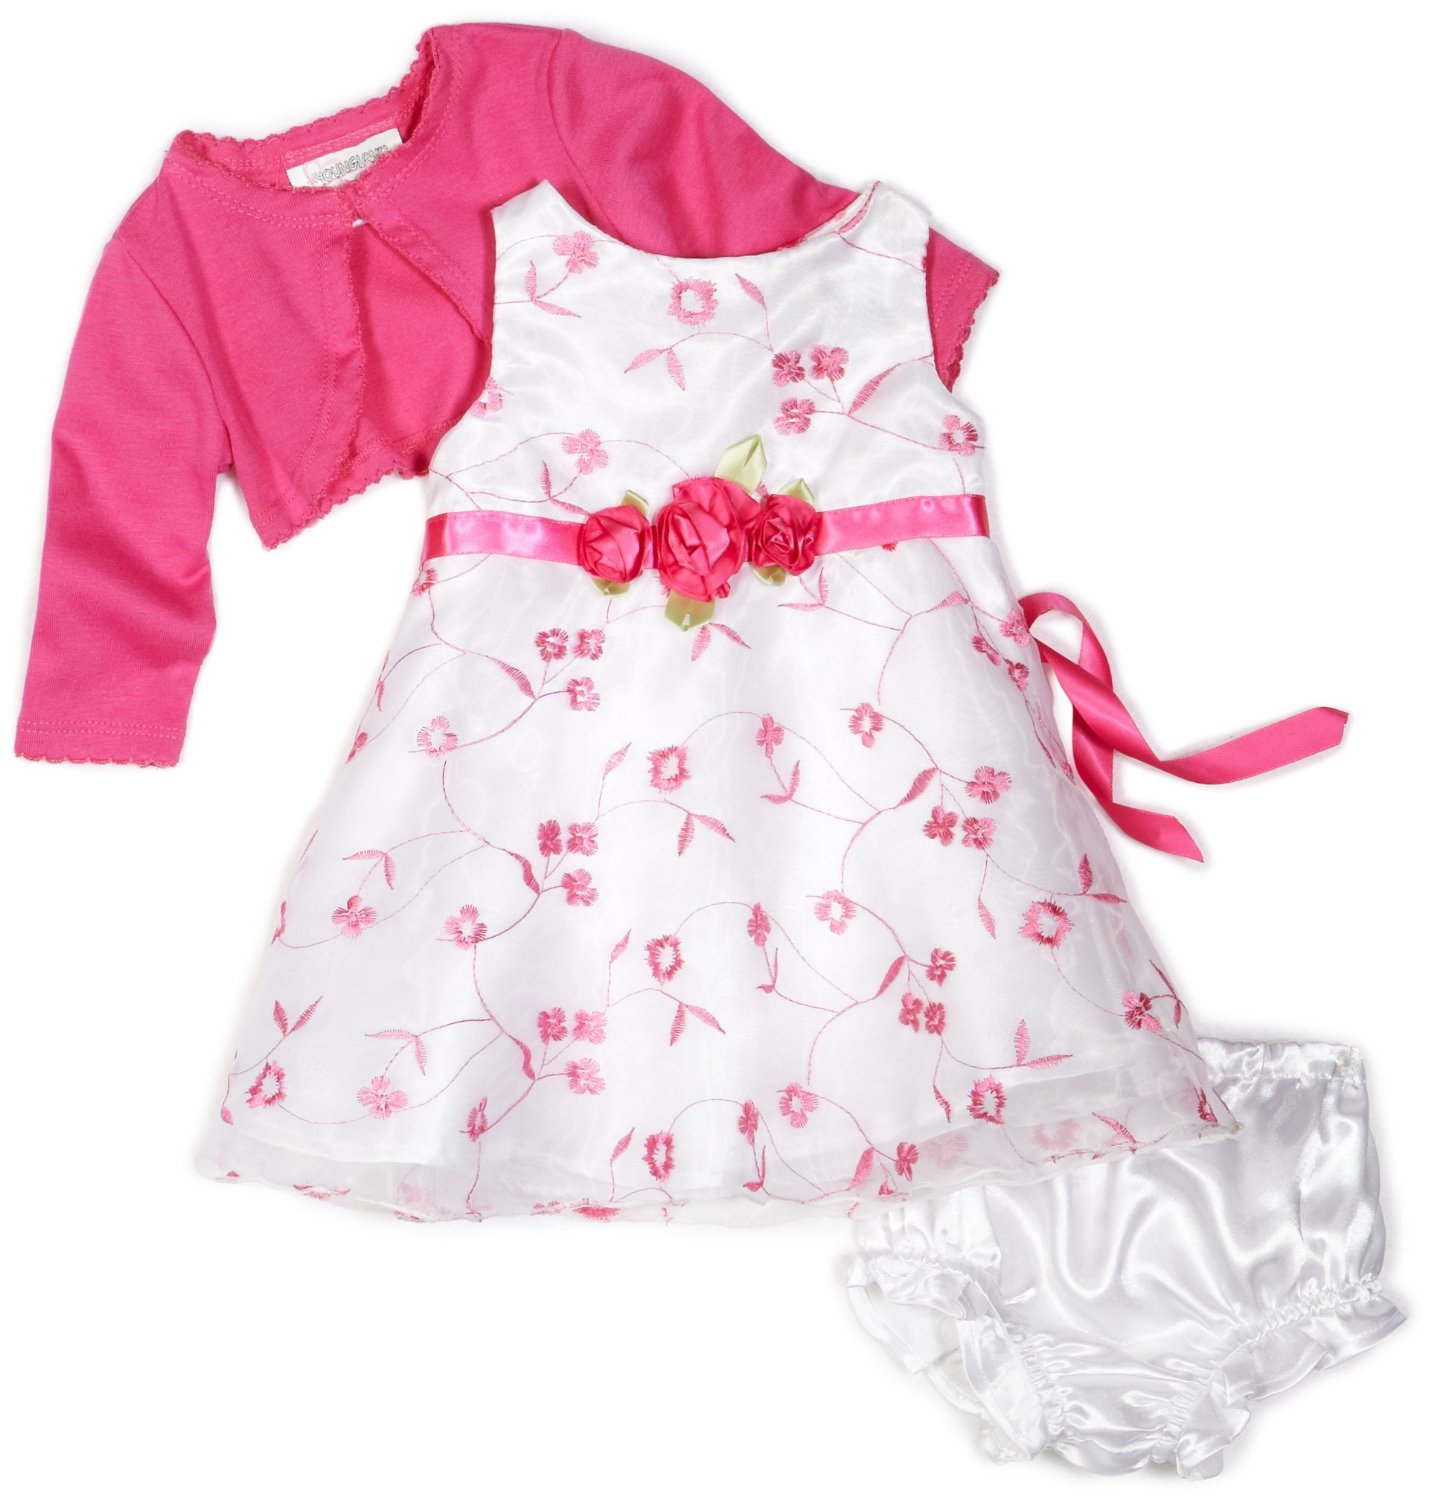 Baby Girls Clothes: Shop Online for Your Convenience ...